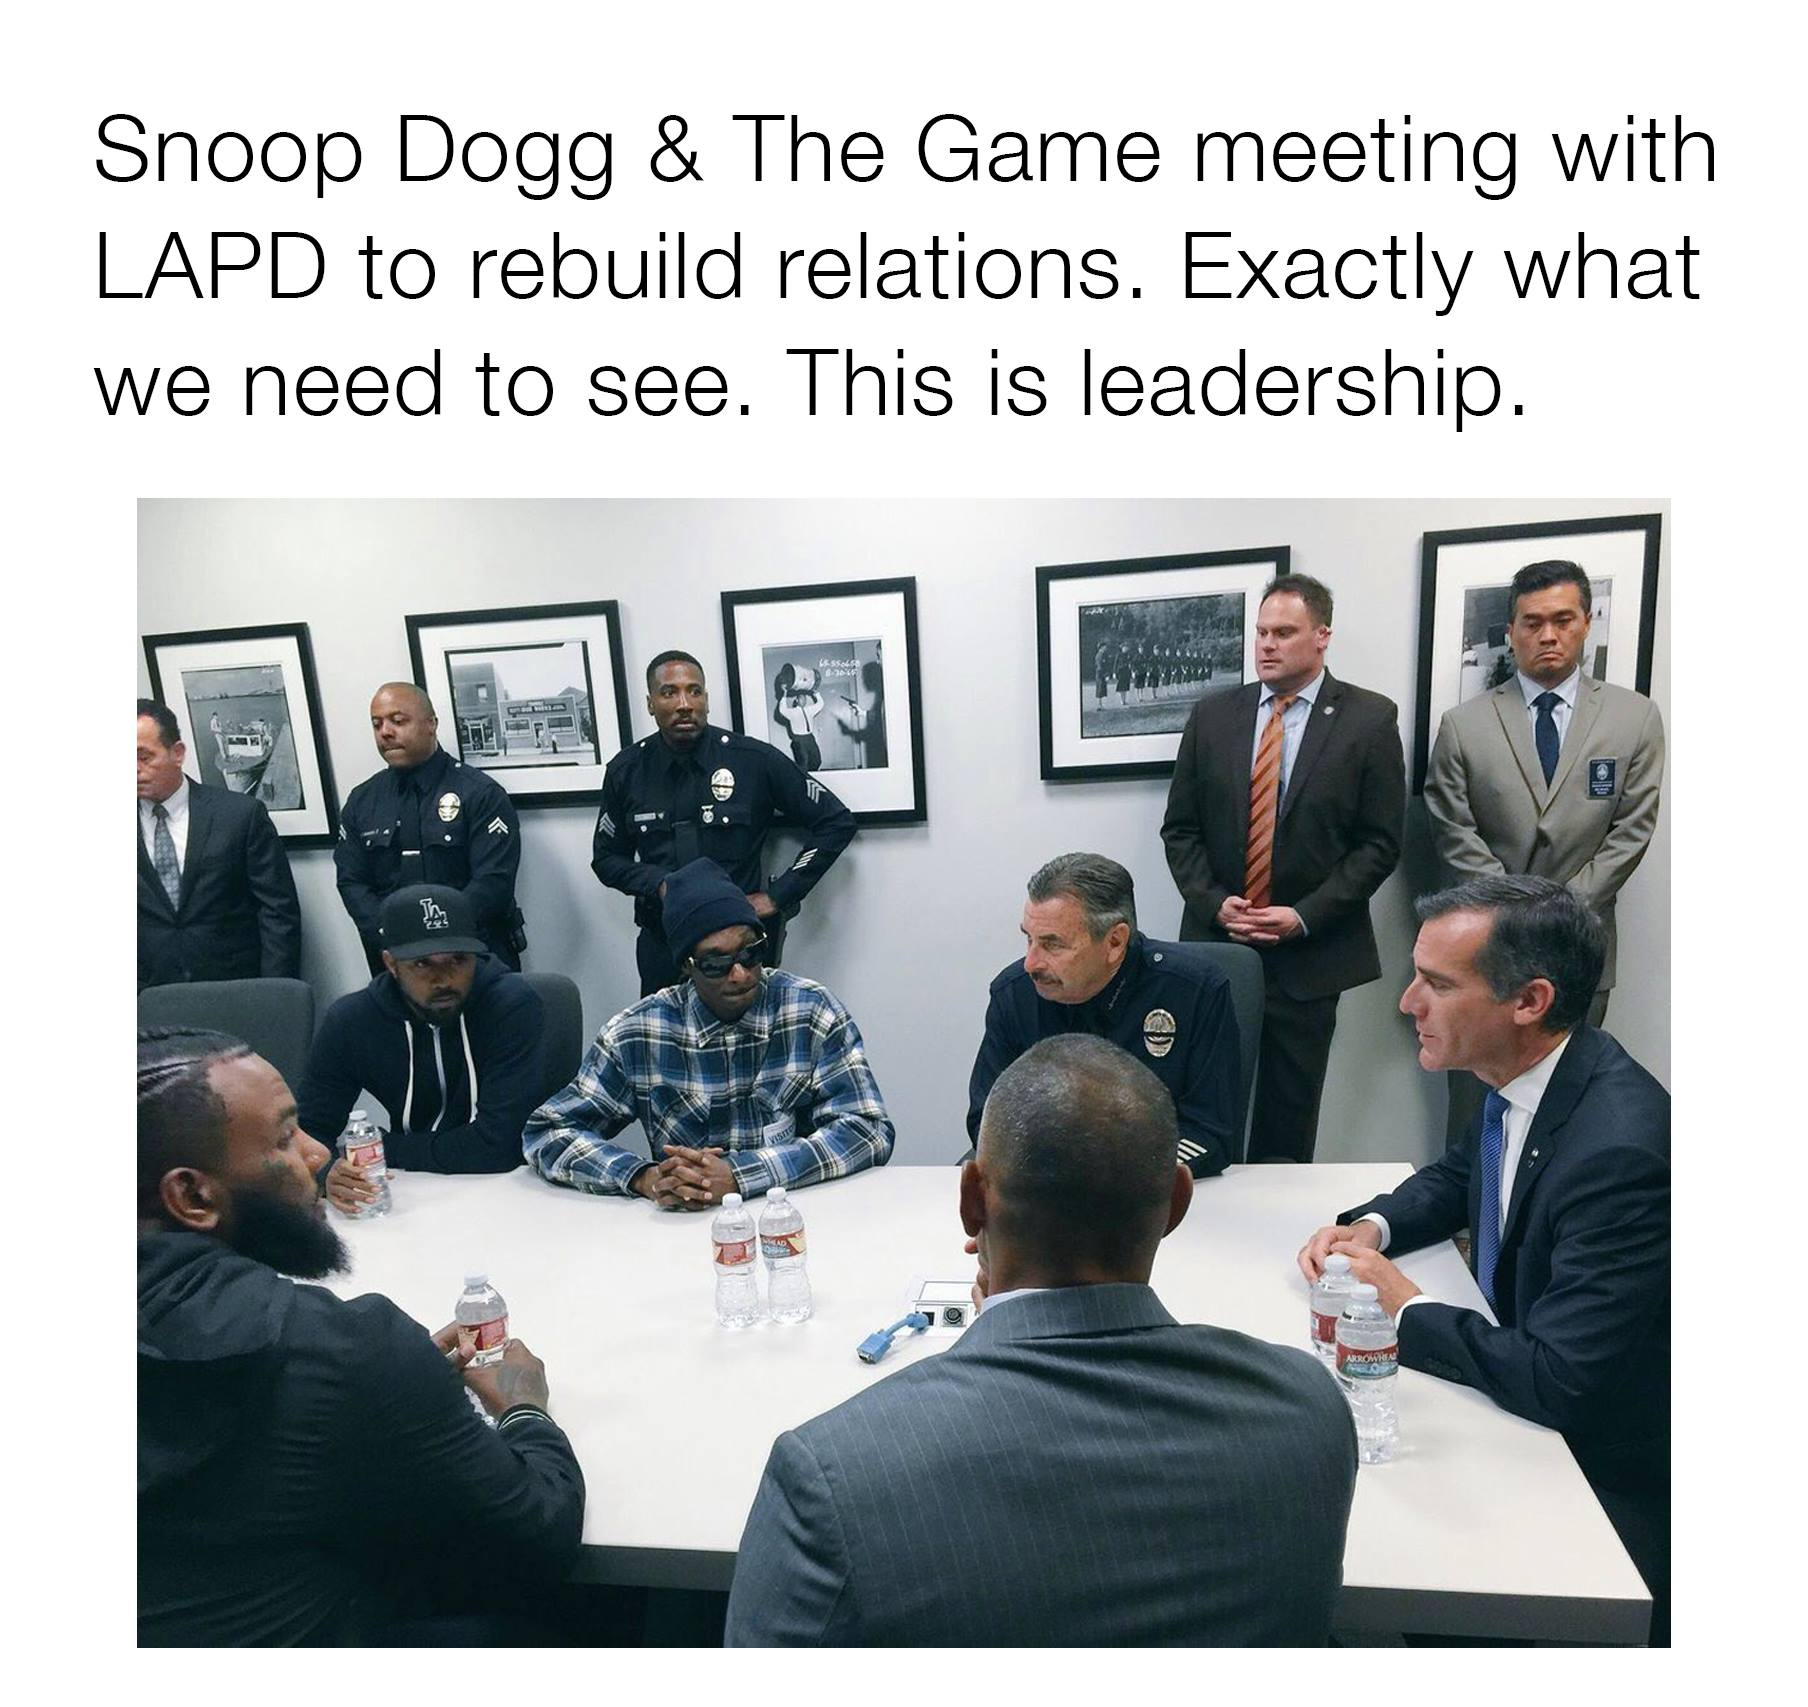 snoop dogg and the game meeting with laid to rebuild relations, exactly what we need to see, this is leadership